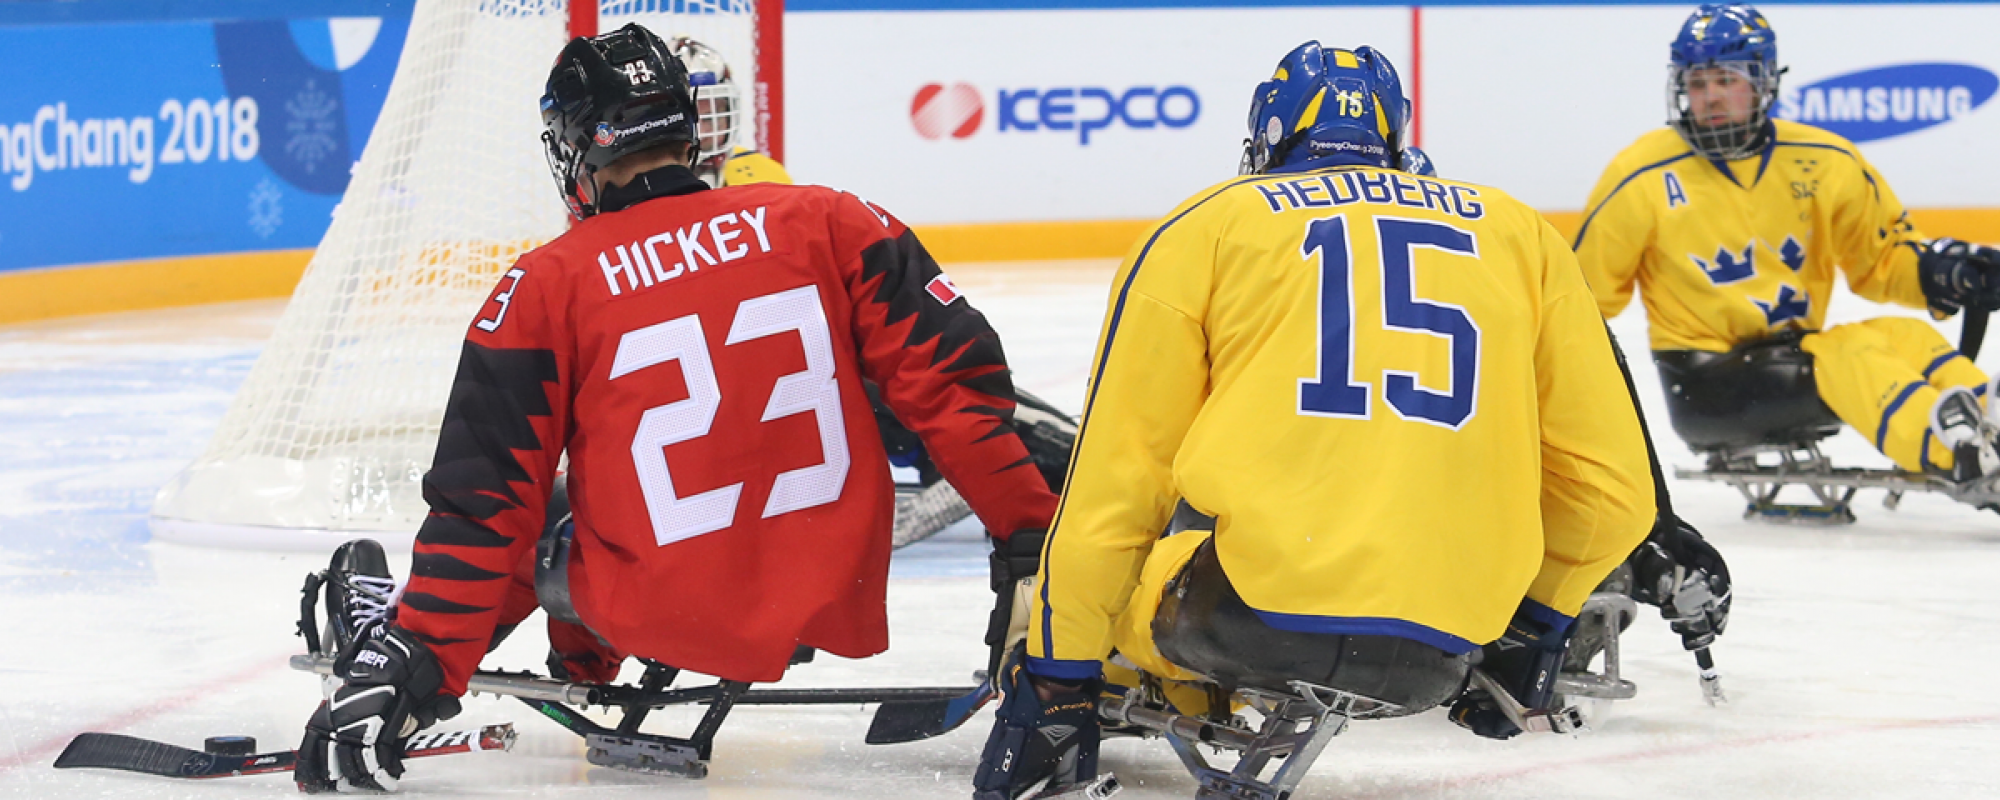 Liam Hickey shooting the puck against Sweden at the 2018 Paralympic Winter Games